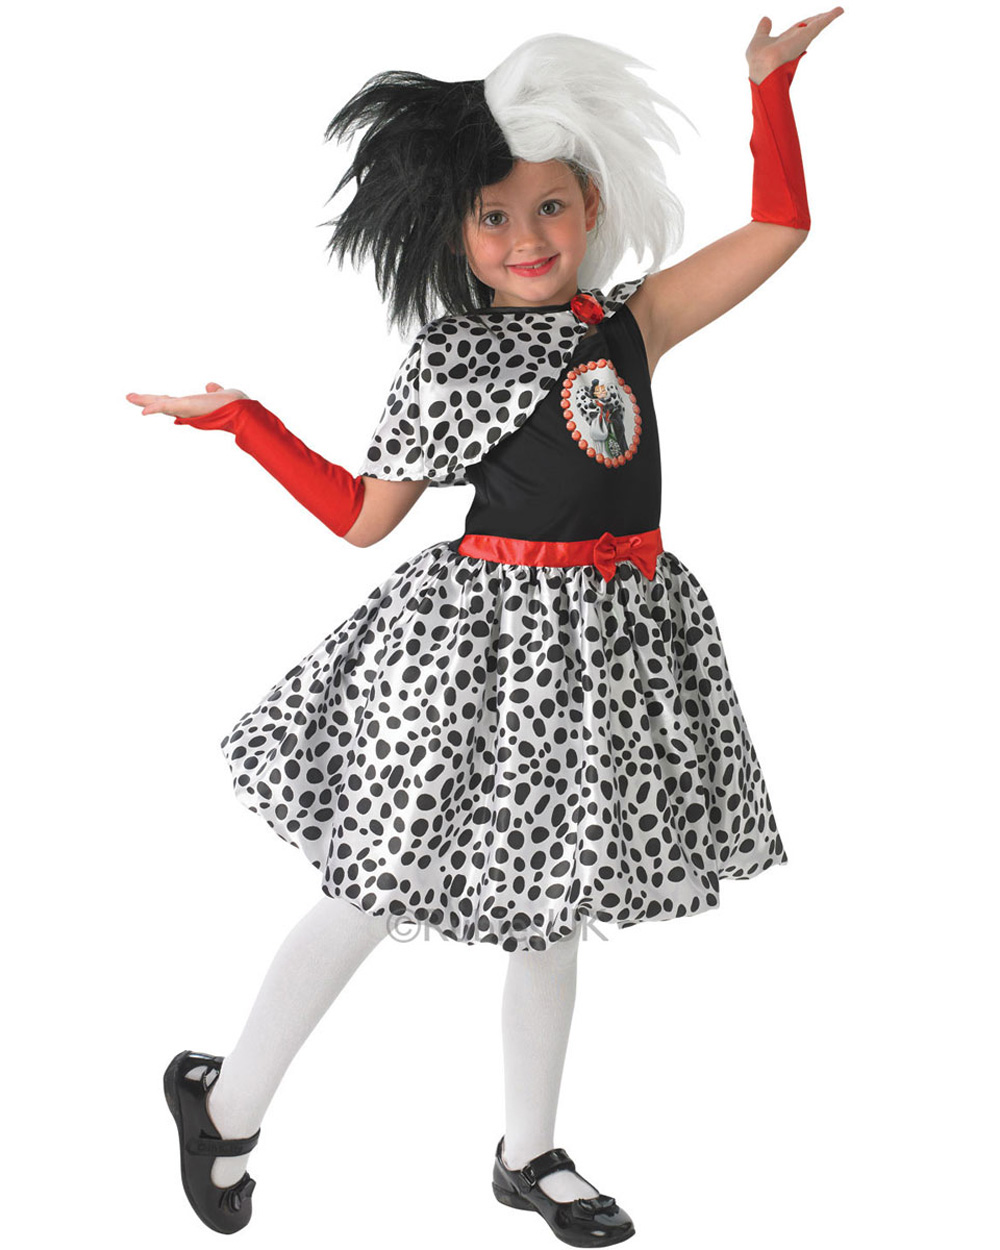 ck348 cruella de ville 101 dalmations villain girls fancy dress costume outfit. Black Bedroom Furniture Sets. Home Design Ideas